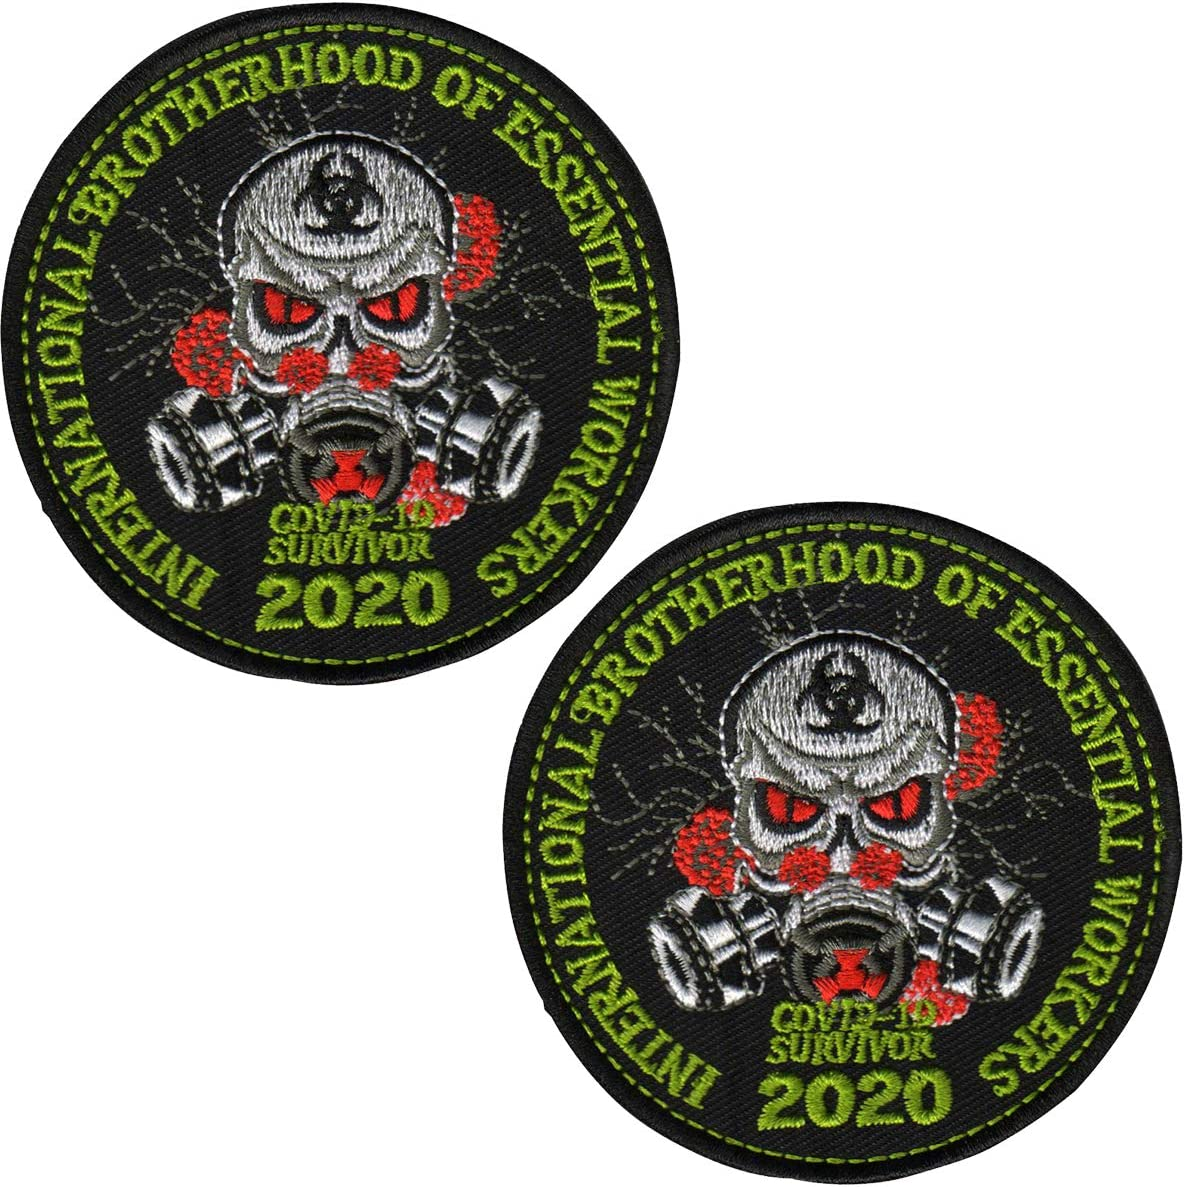 International Brotherhood of Essential Workers COVID-19 Survivor 2020 Embroidered Patch 3.15 Inch Emblem Tactical Military Morale Funny Patches Badges Appliques with Fastener Hook and Loop Backing